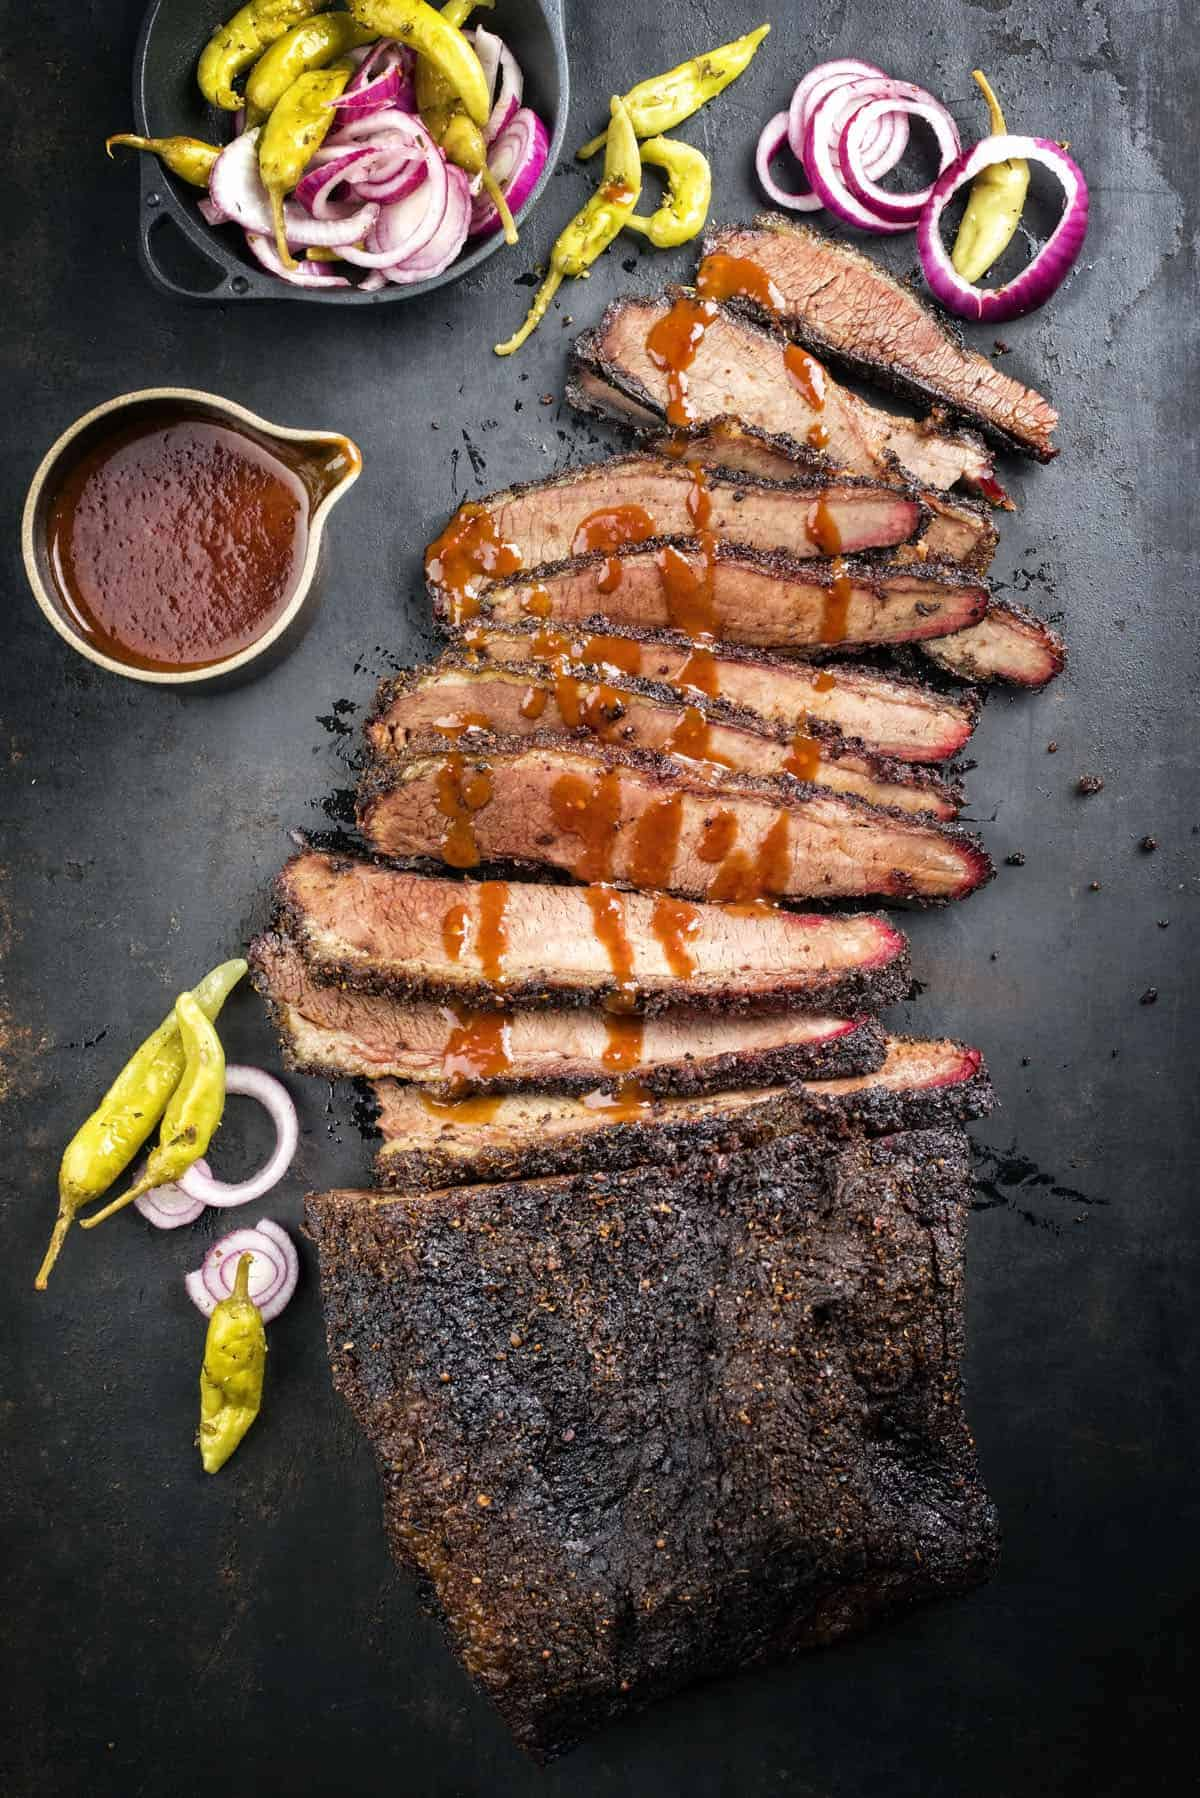 traditional smoked barbecue wagyu beef brisket